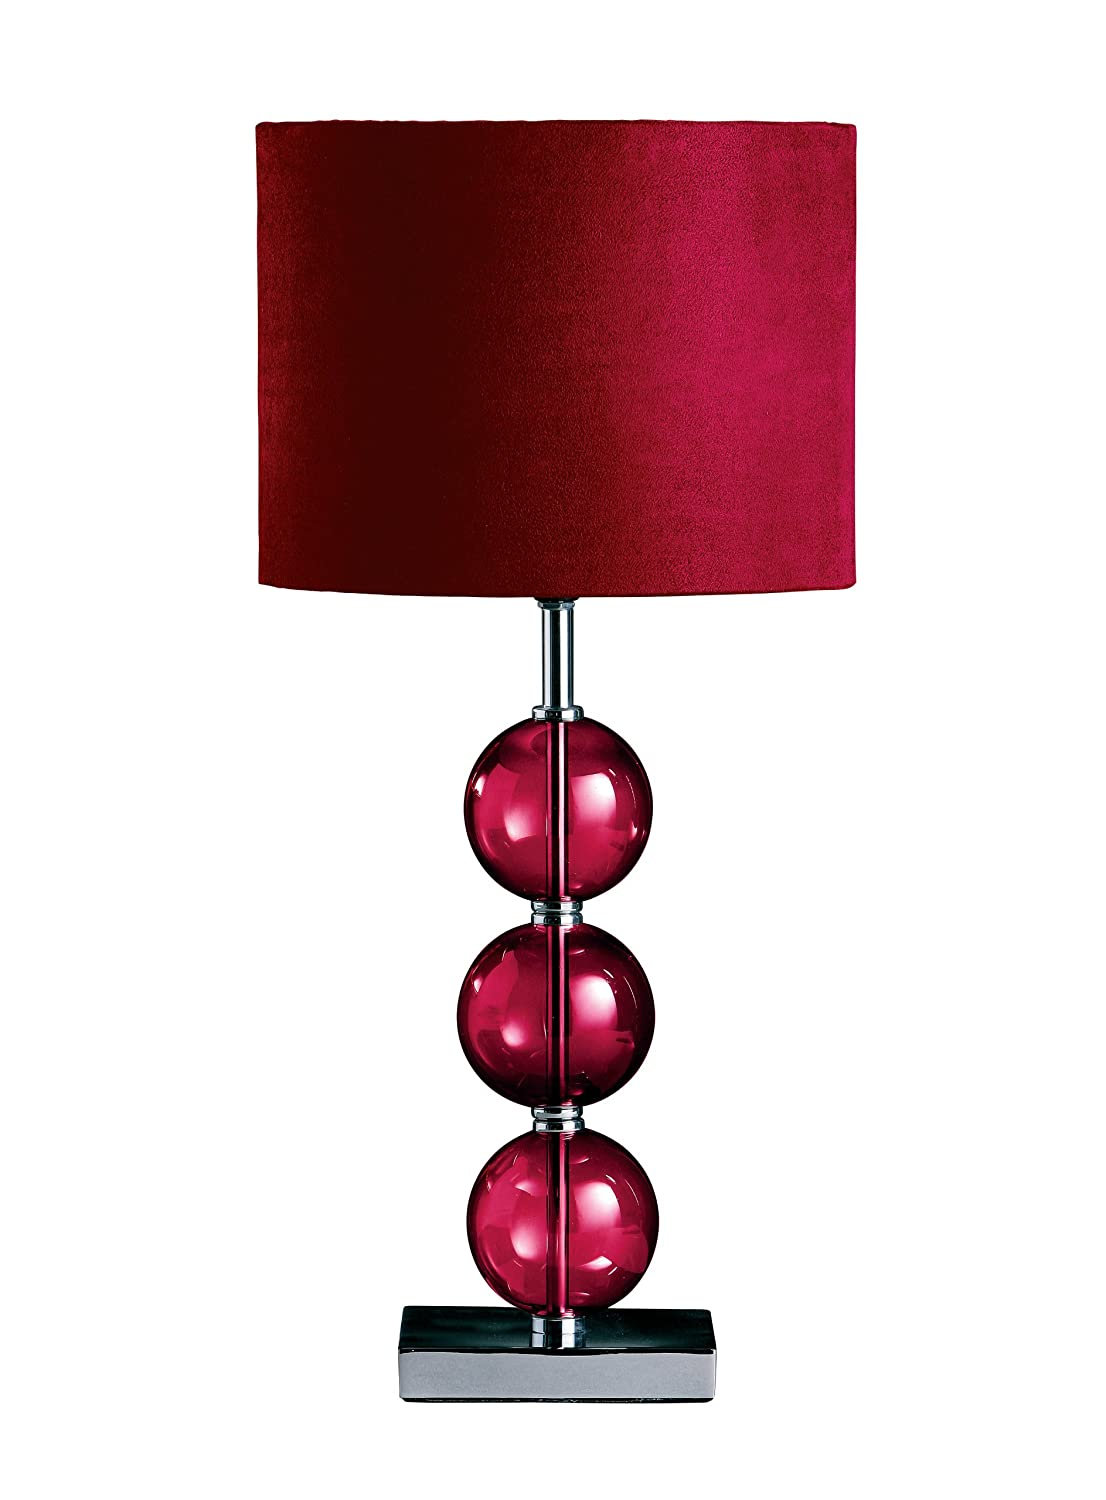 Premier Housewares Mistro Purple Table Lamp with 3 Glass Balls Chrome Base and Faux Suede Shade 2501168 2501168_Purple